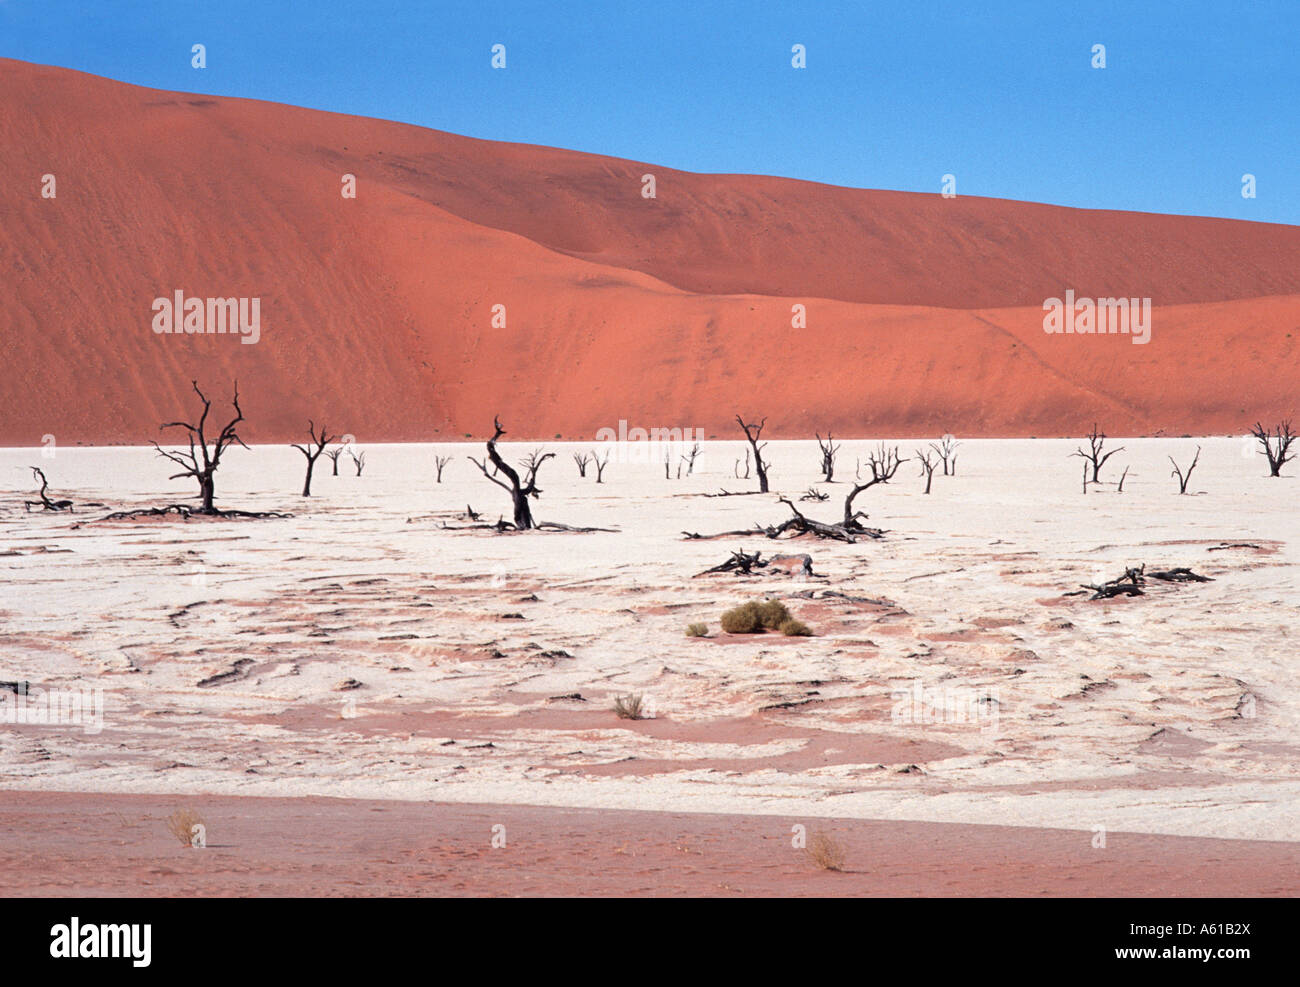 Sand dunes & dessicated acacia trees on a salt pan Dead Vlei Namib Naukluft National Park. Namibia - Stock Image